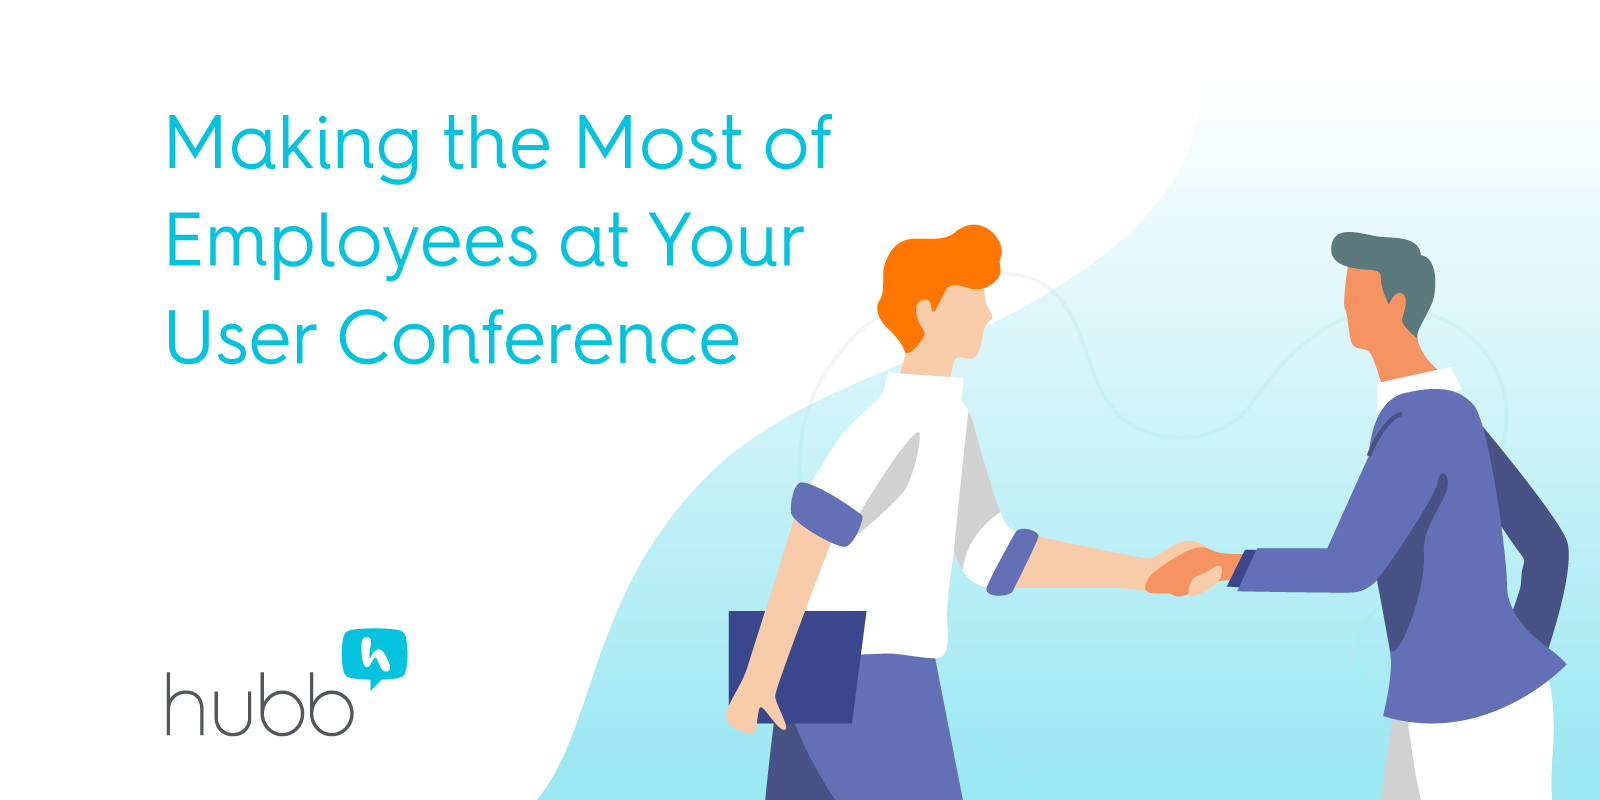 Making the Most of Employees at Your User Conference